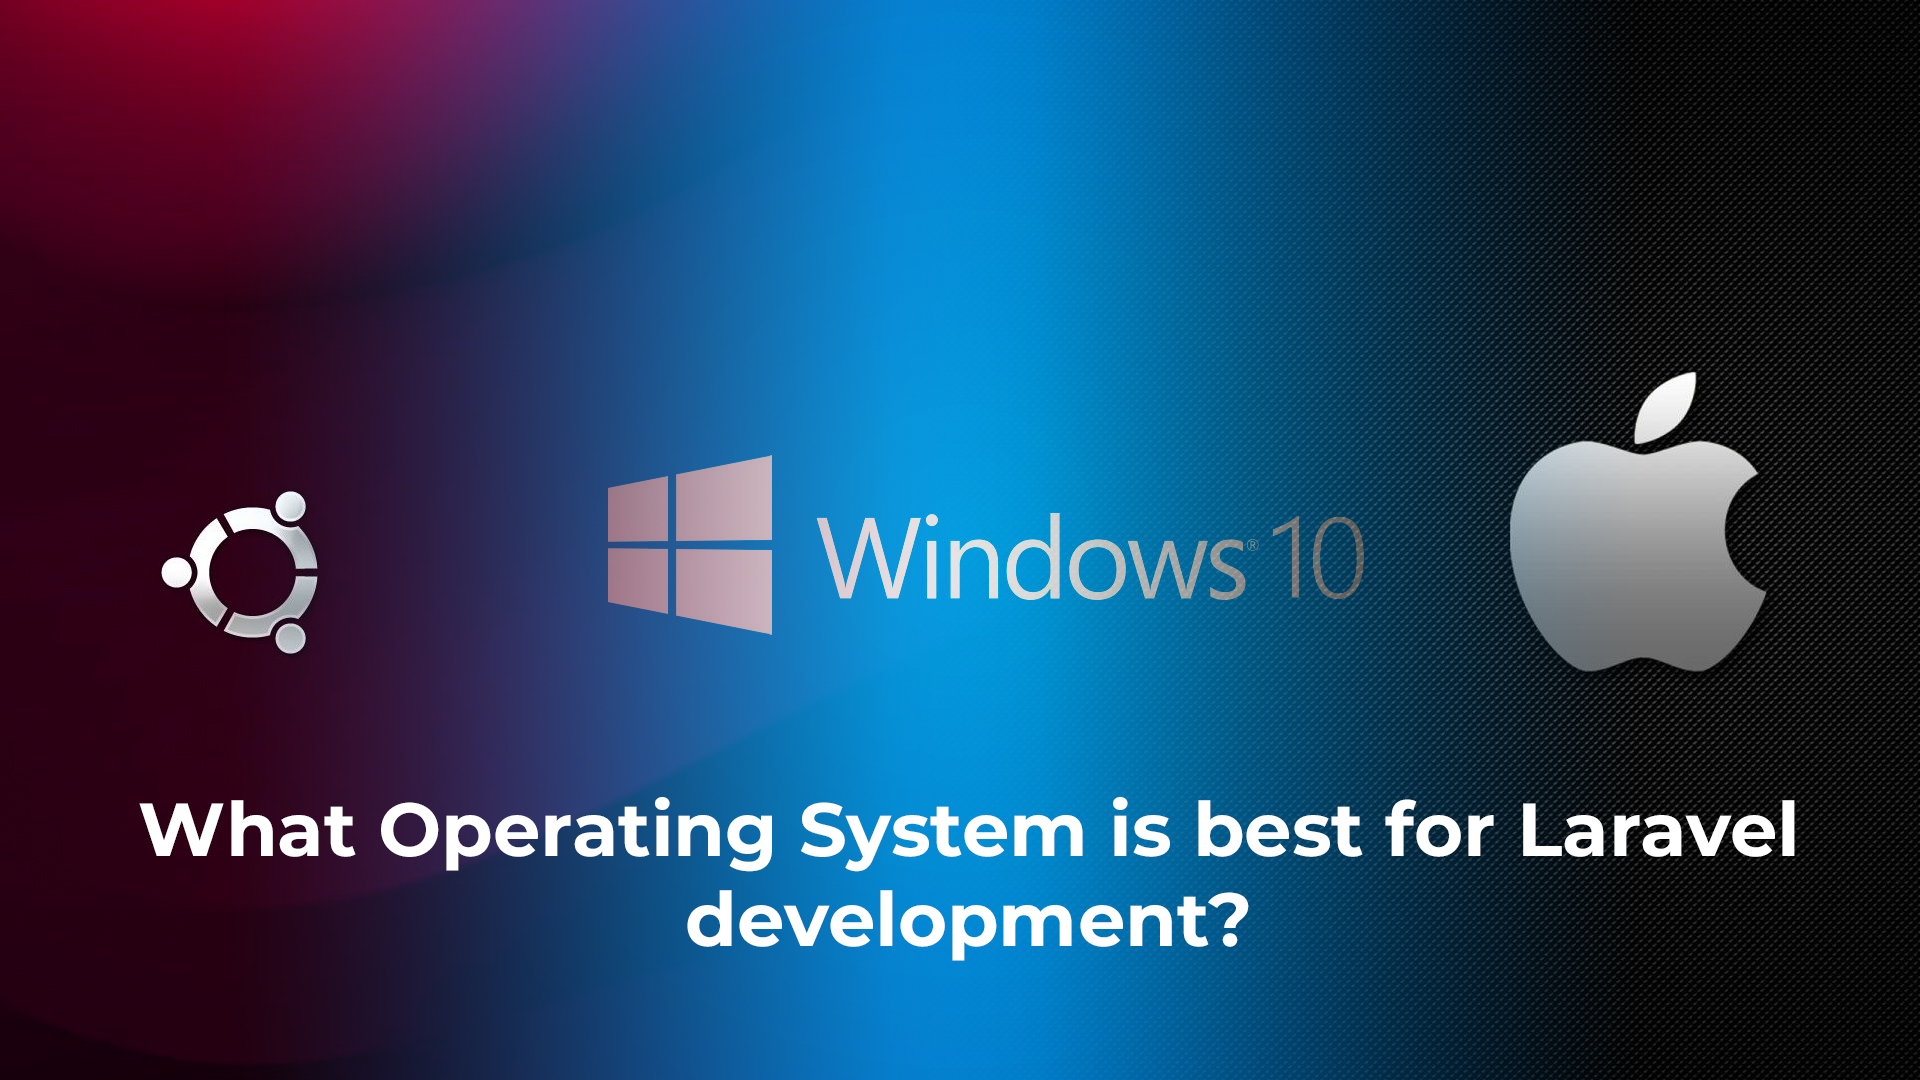 Windows or Mac / Linux - Which is better for Laravel? cover image